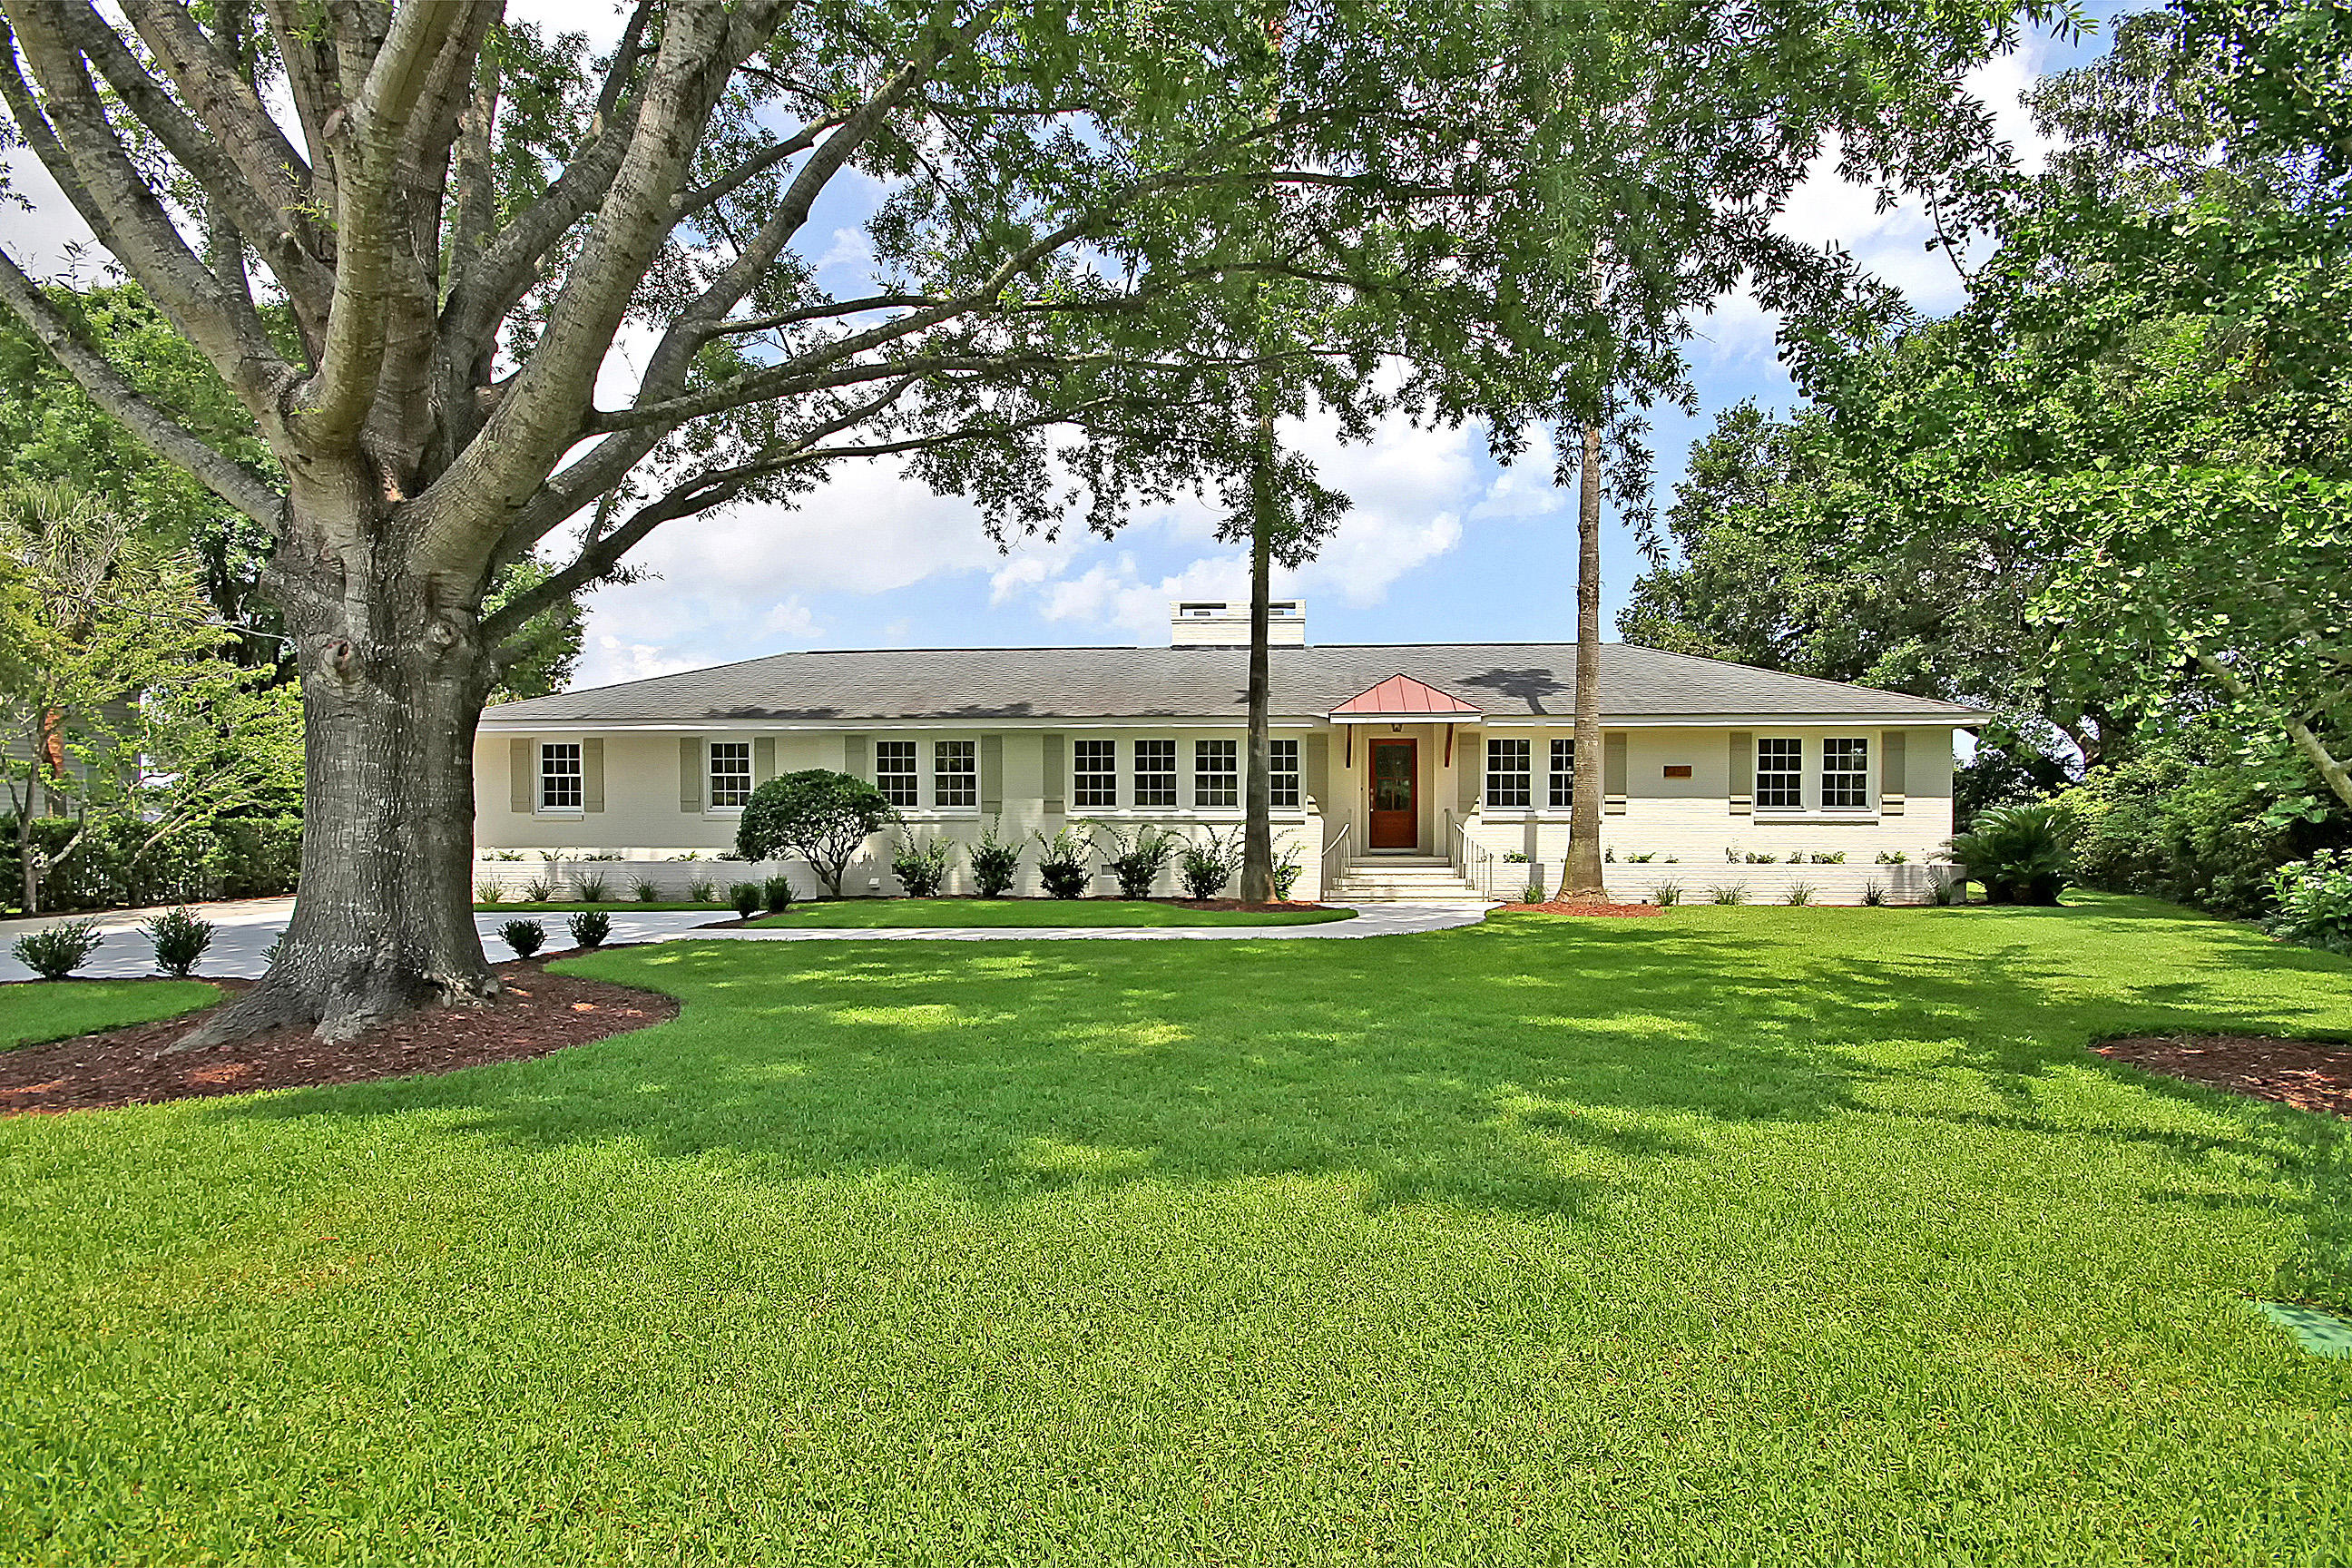 Photo of 1455 Burningtree Rd, Charleston, SC 29412